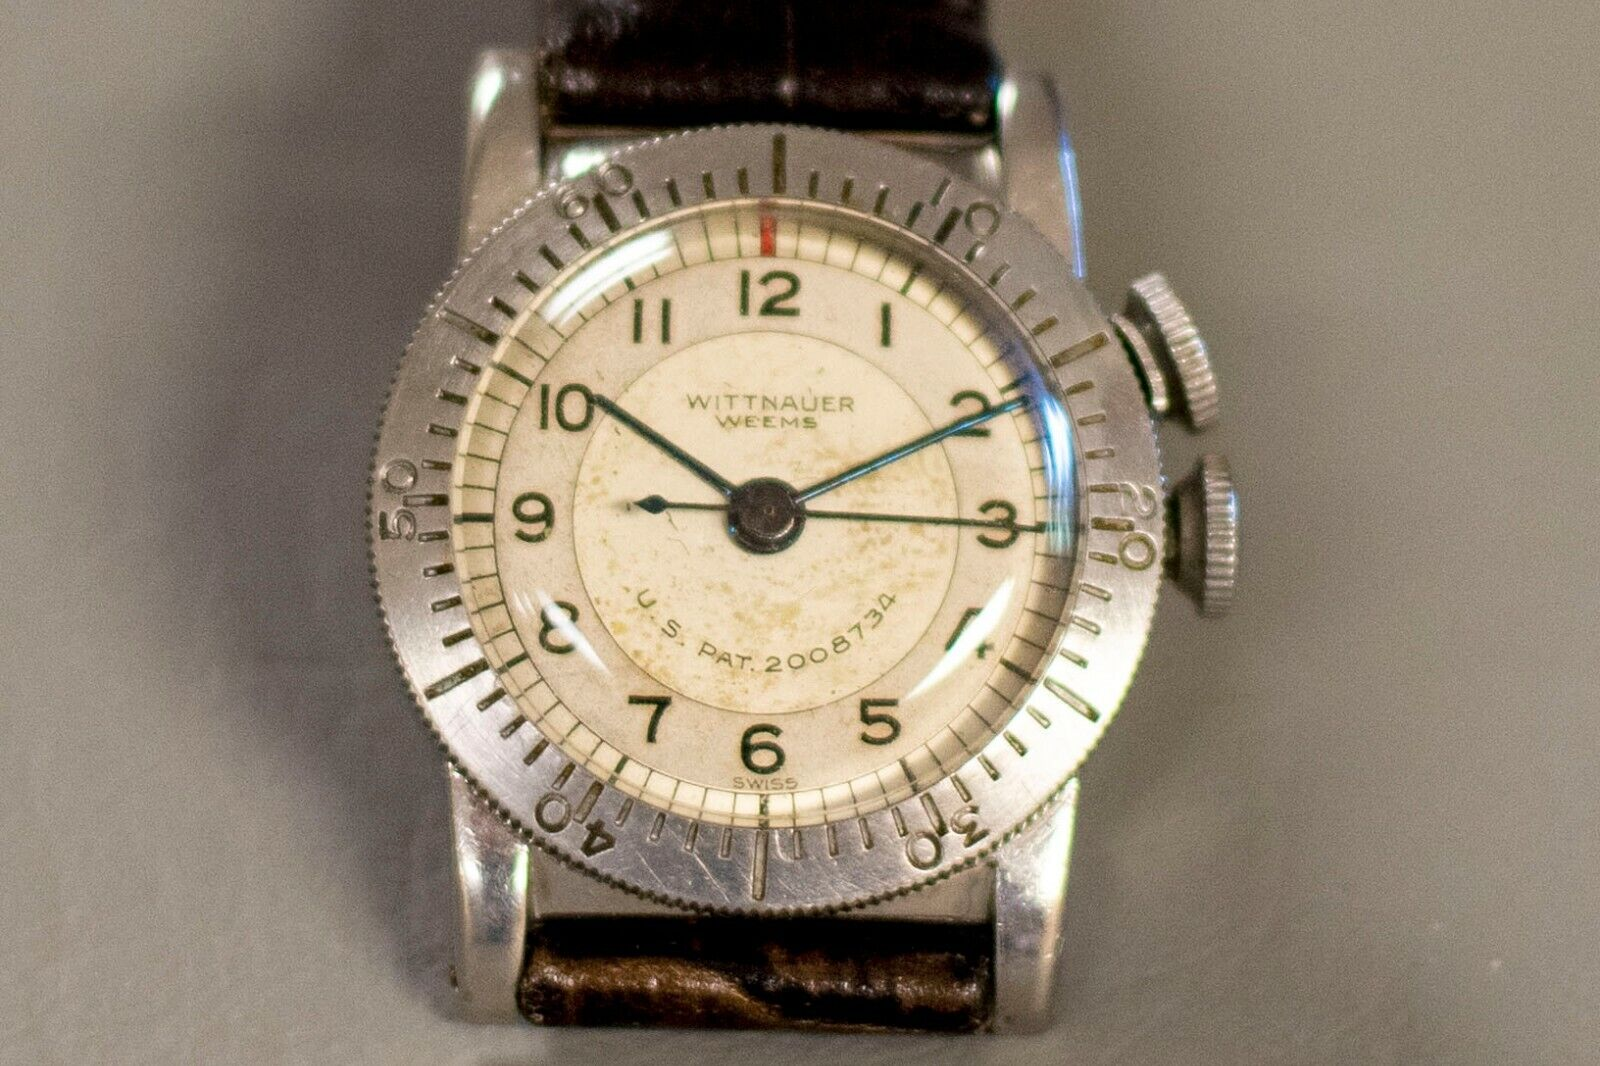 Vintage WWII era Longines Wittnauer Weems Pilot Watch 1940s